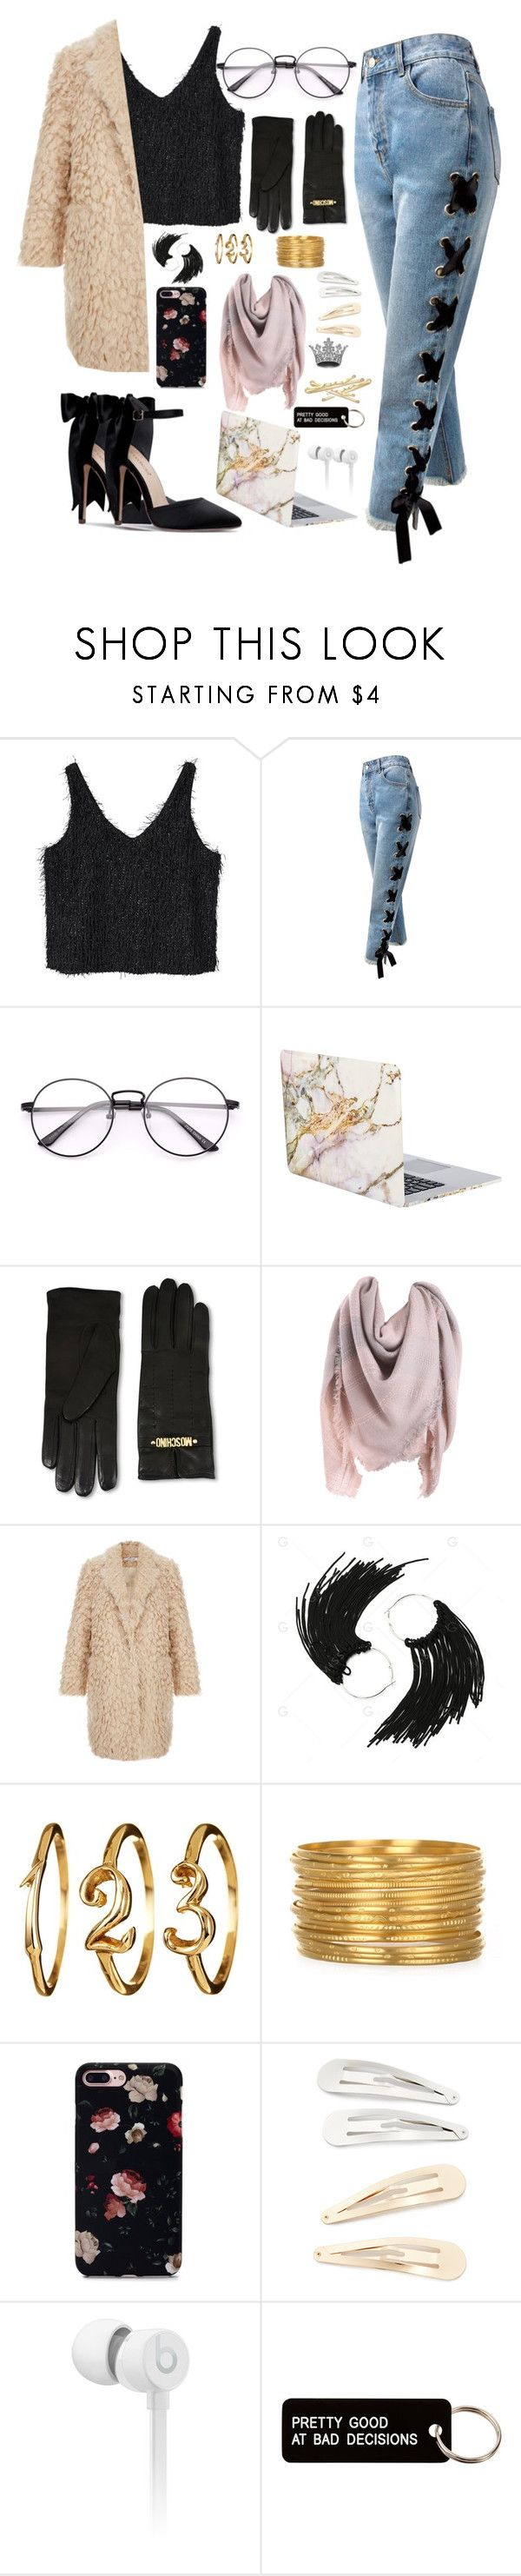 """Savage"" by skates03 ❤ liked on Polyvore featuring MANGO, Sans Souci, iHome, Moschino, Kitsch, Beats by Dr. Dre and Various Projects"